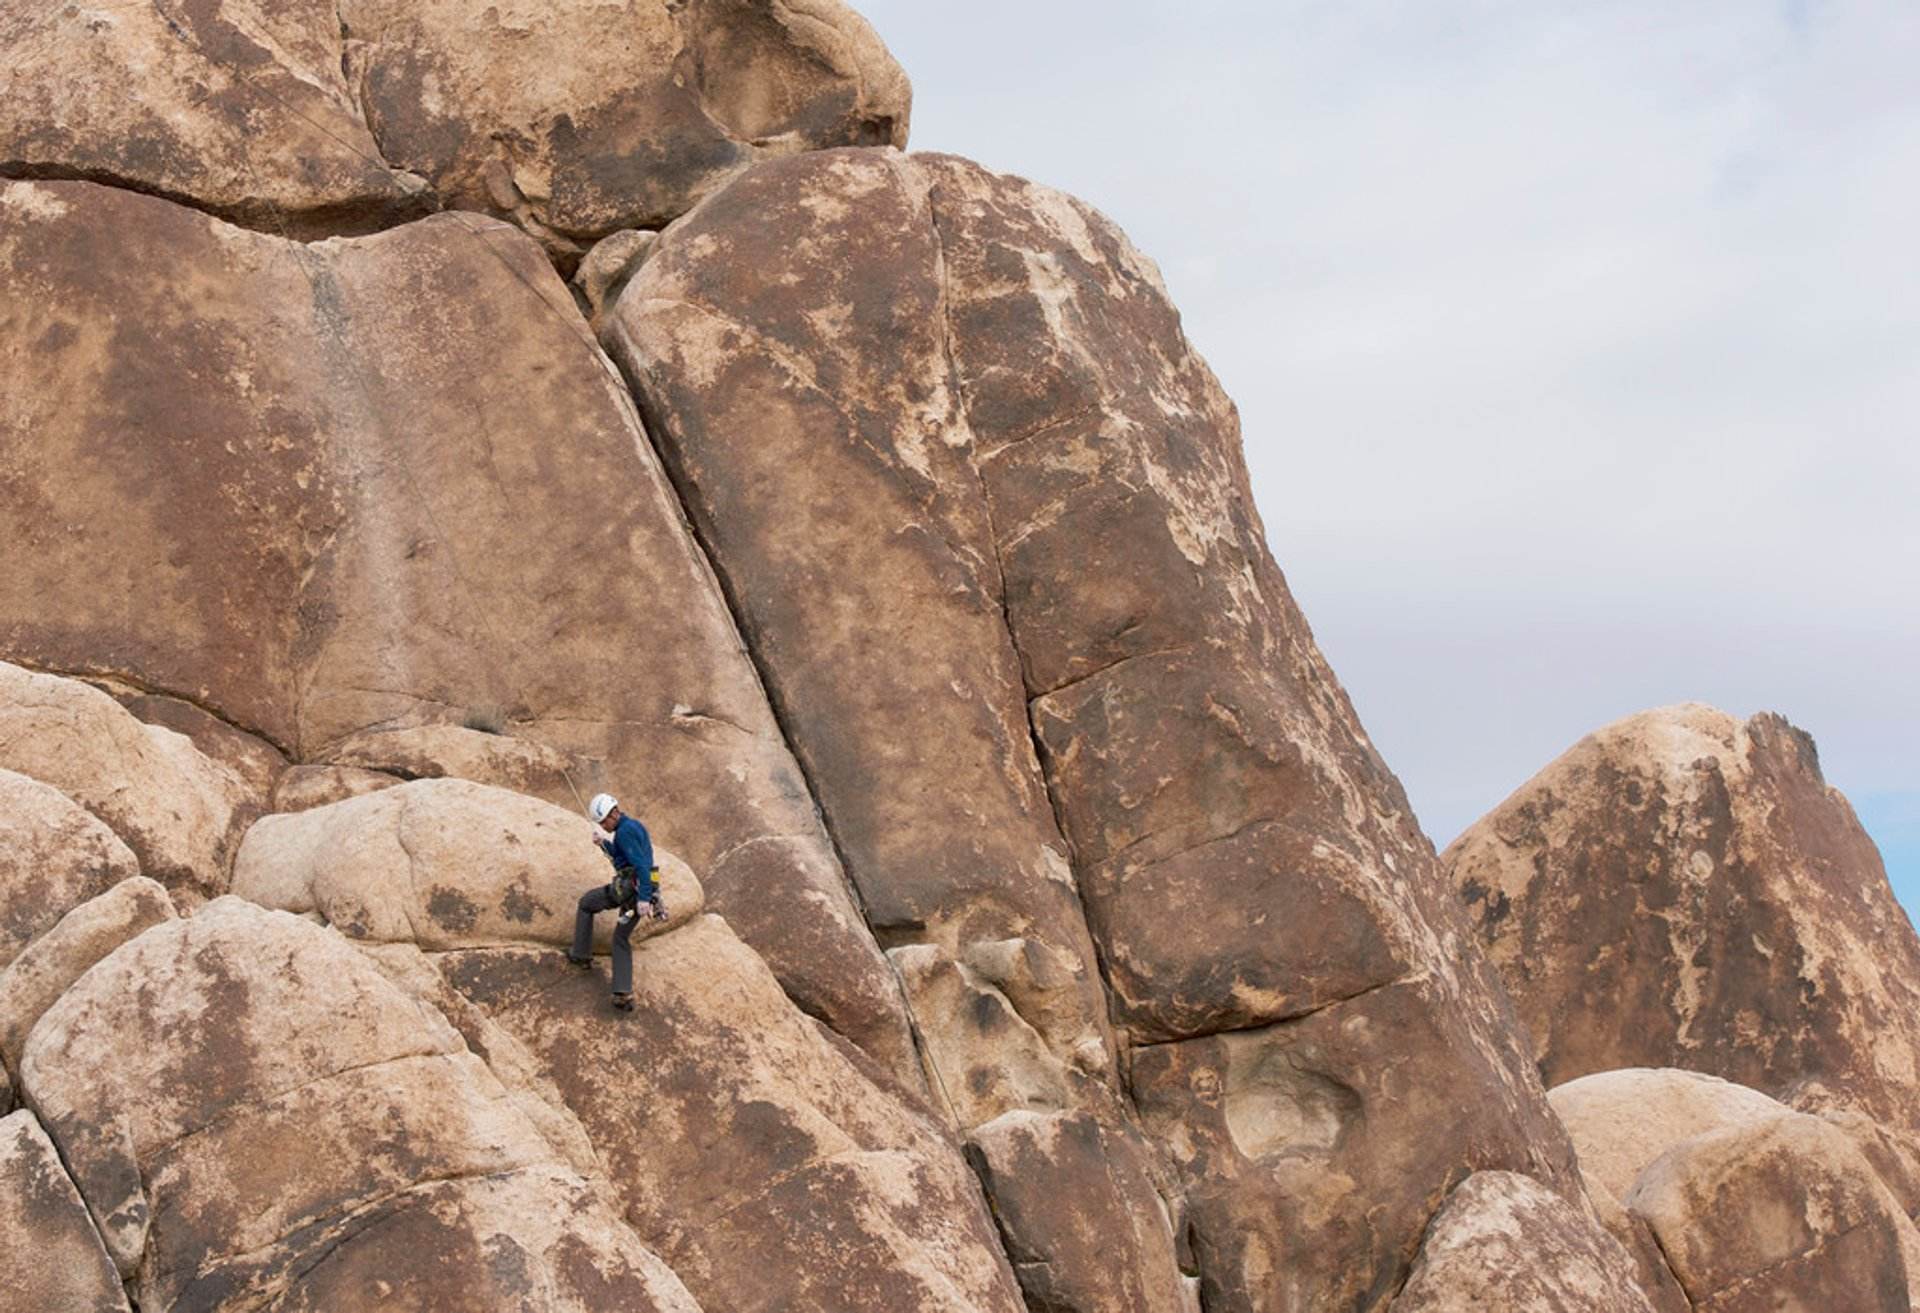 Joshua Tree Rock Climbing in Los Angeles - Best Season 2020